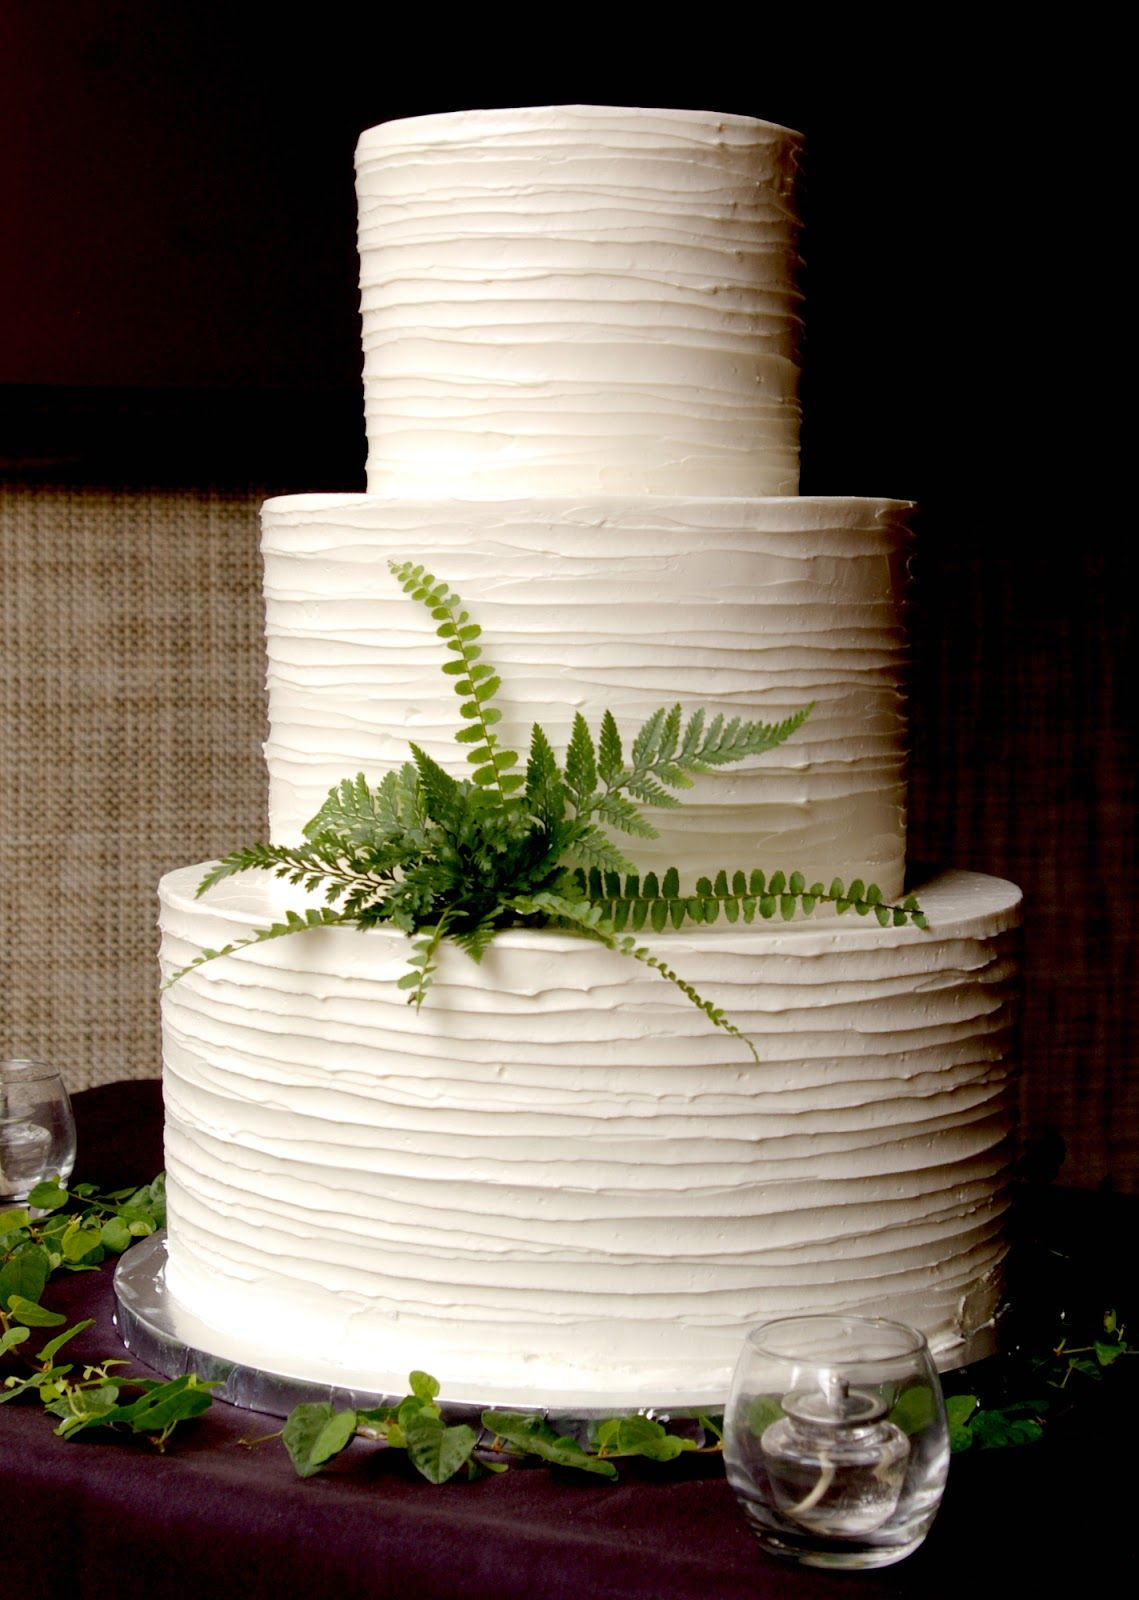 Delighted White Wedding Cake Recipe Tall Country Wedding Cake Ideas Round Wedding Cake Pool Steps Wedding Dress Cupcake Cake Young Owl Wedding Cake Toppers PurpleCakes For Weddings Wedding Cakes With Buttercream Garlands | Wednesday, June 26, 2013 ..